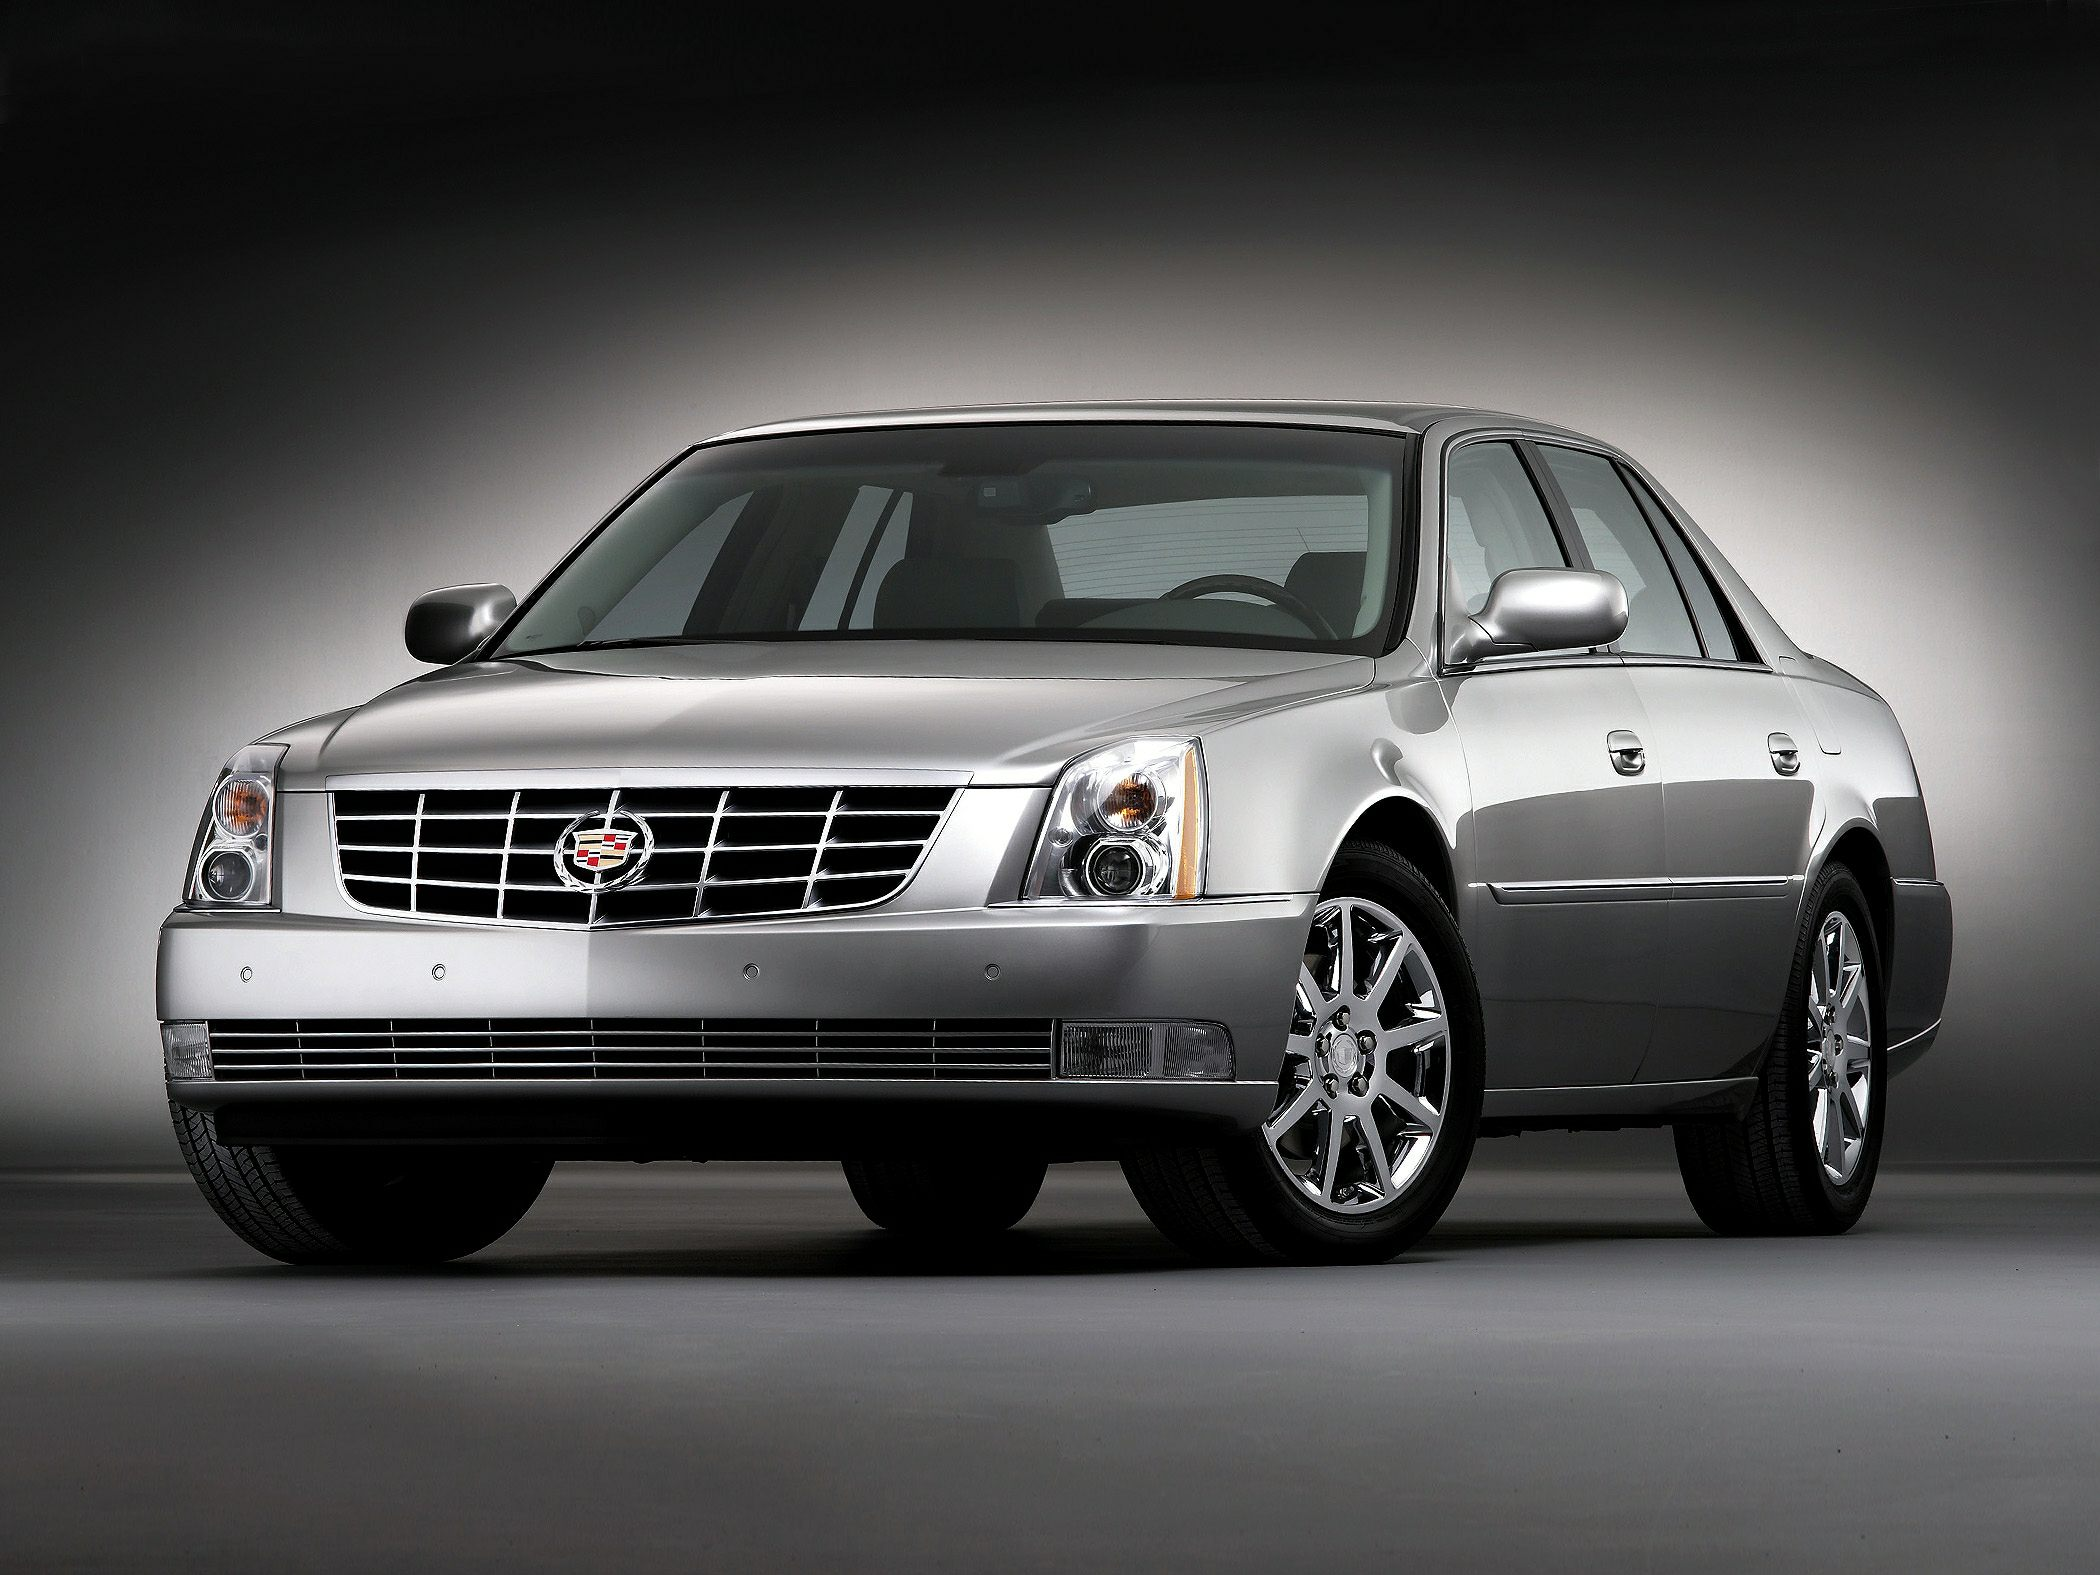 2007 Cadillac DTS Success starts with Momentum Hyundai Mitsubishi Cadillac FEVER New Arrival Are